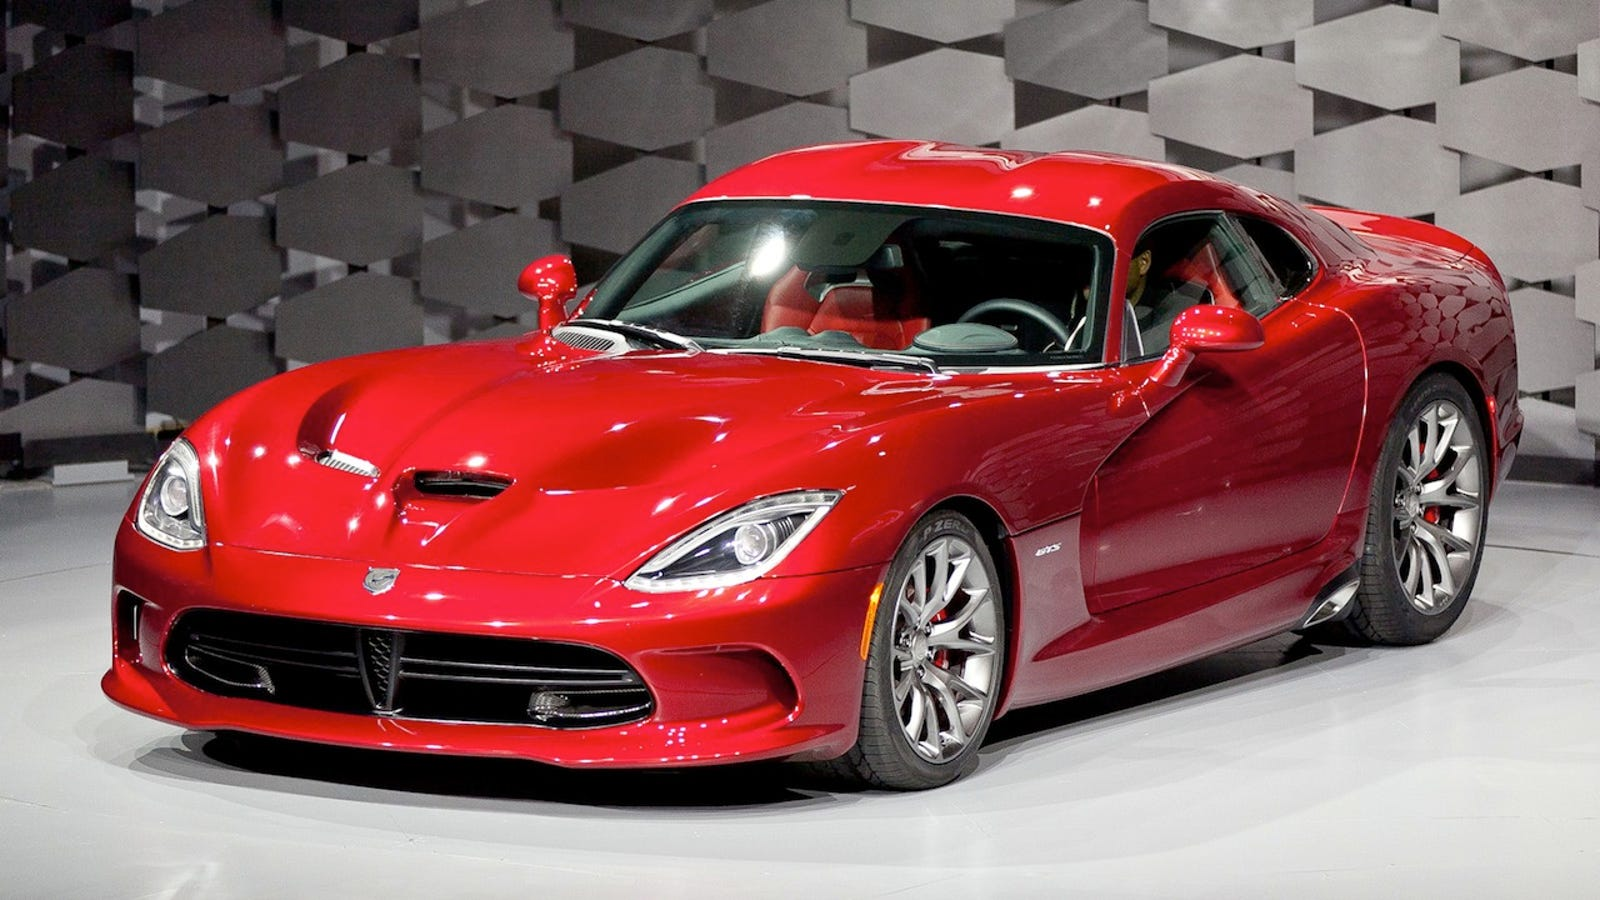 2013 Srt Viper The Snake Is Back